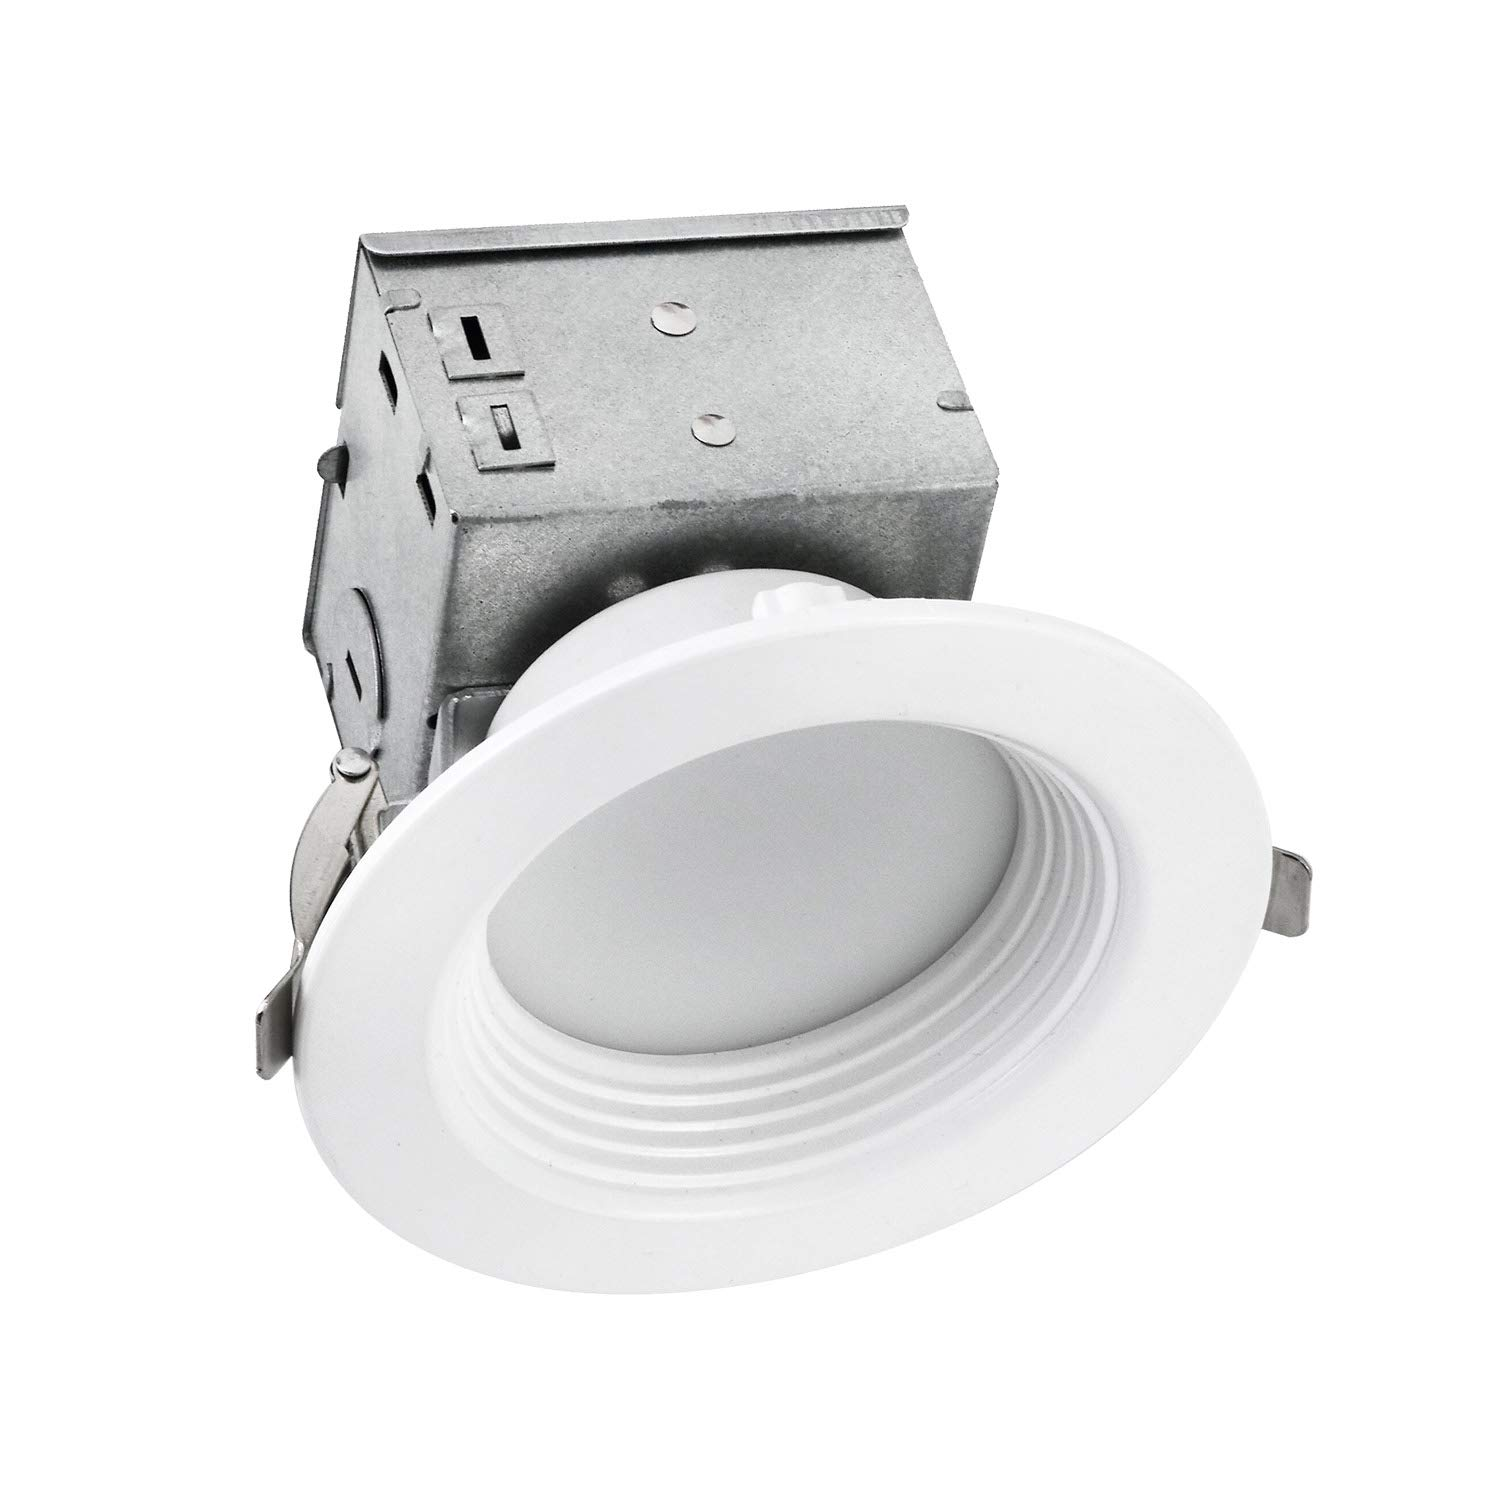 OSTWIN LED ダウンライト レトロフィット 内蔵 J-BOX 4インチ 1 Pack OW-LDLOBR-4D1050W 1 Pack 5000K (Daylight) B07M9XN4RV